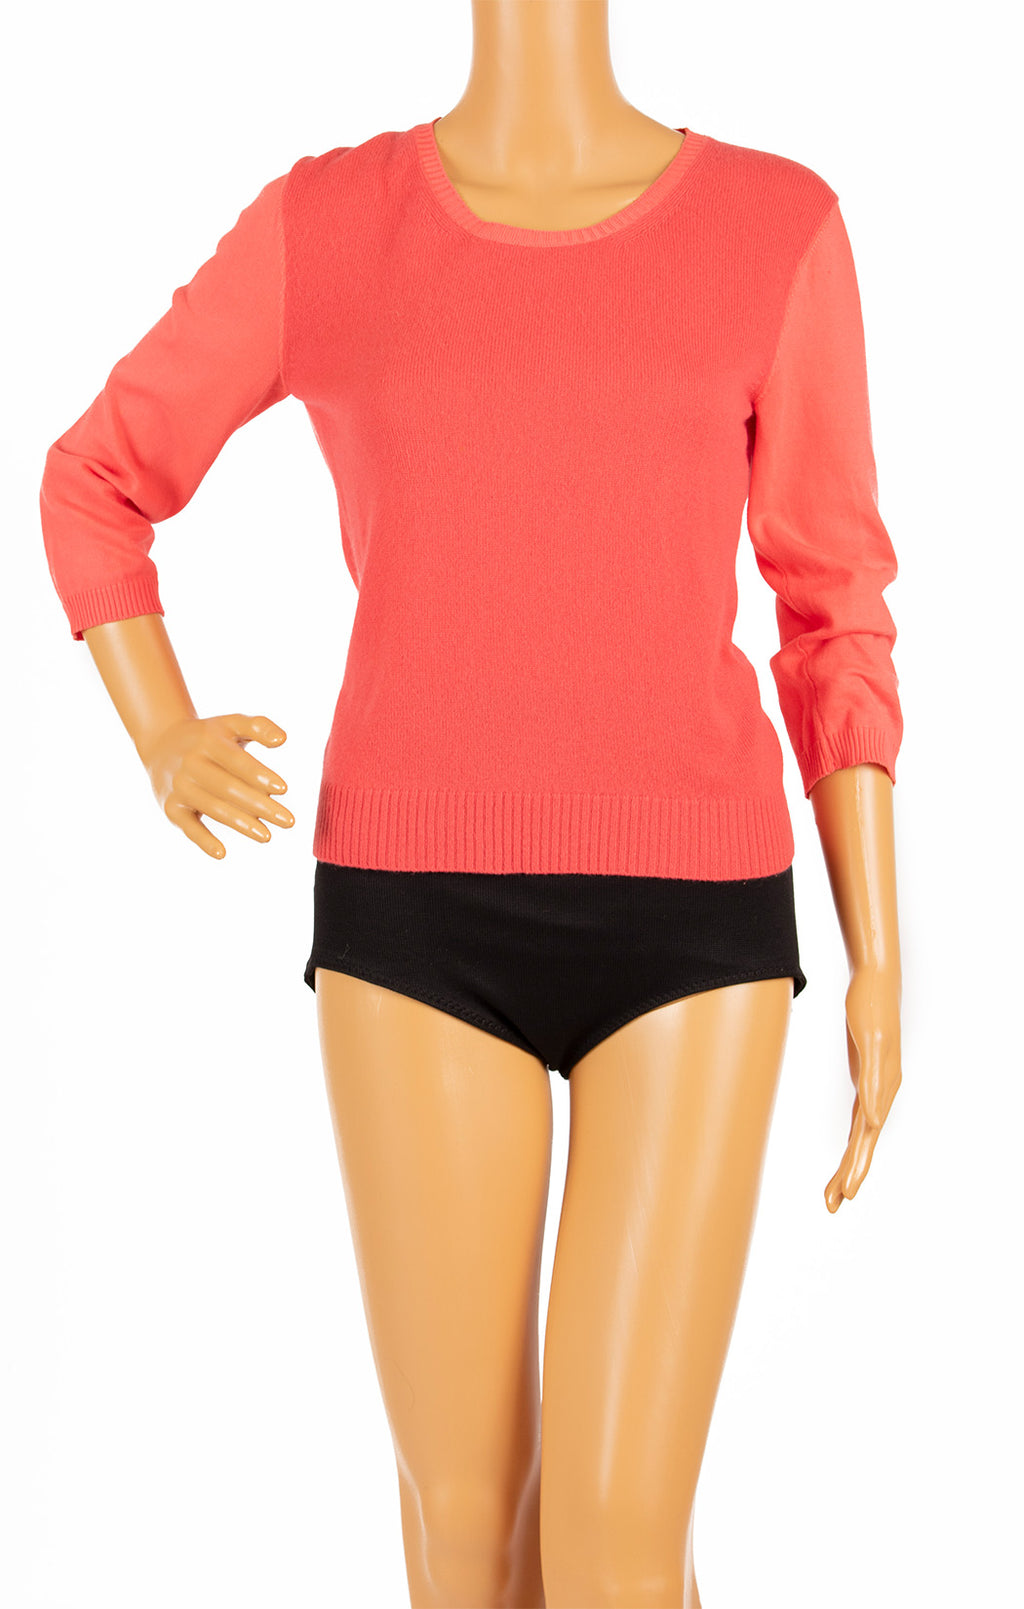 Front view of VICTOR VICTORIA Sweater Size: Smsll